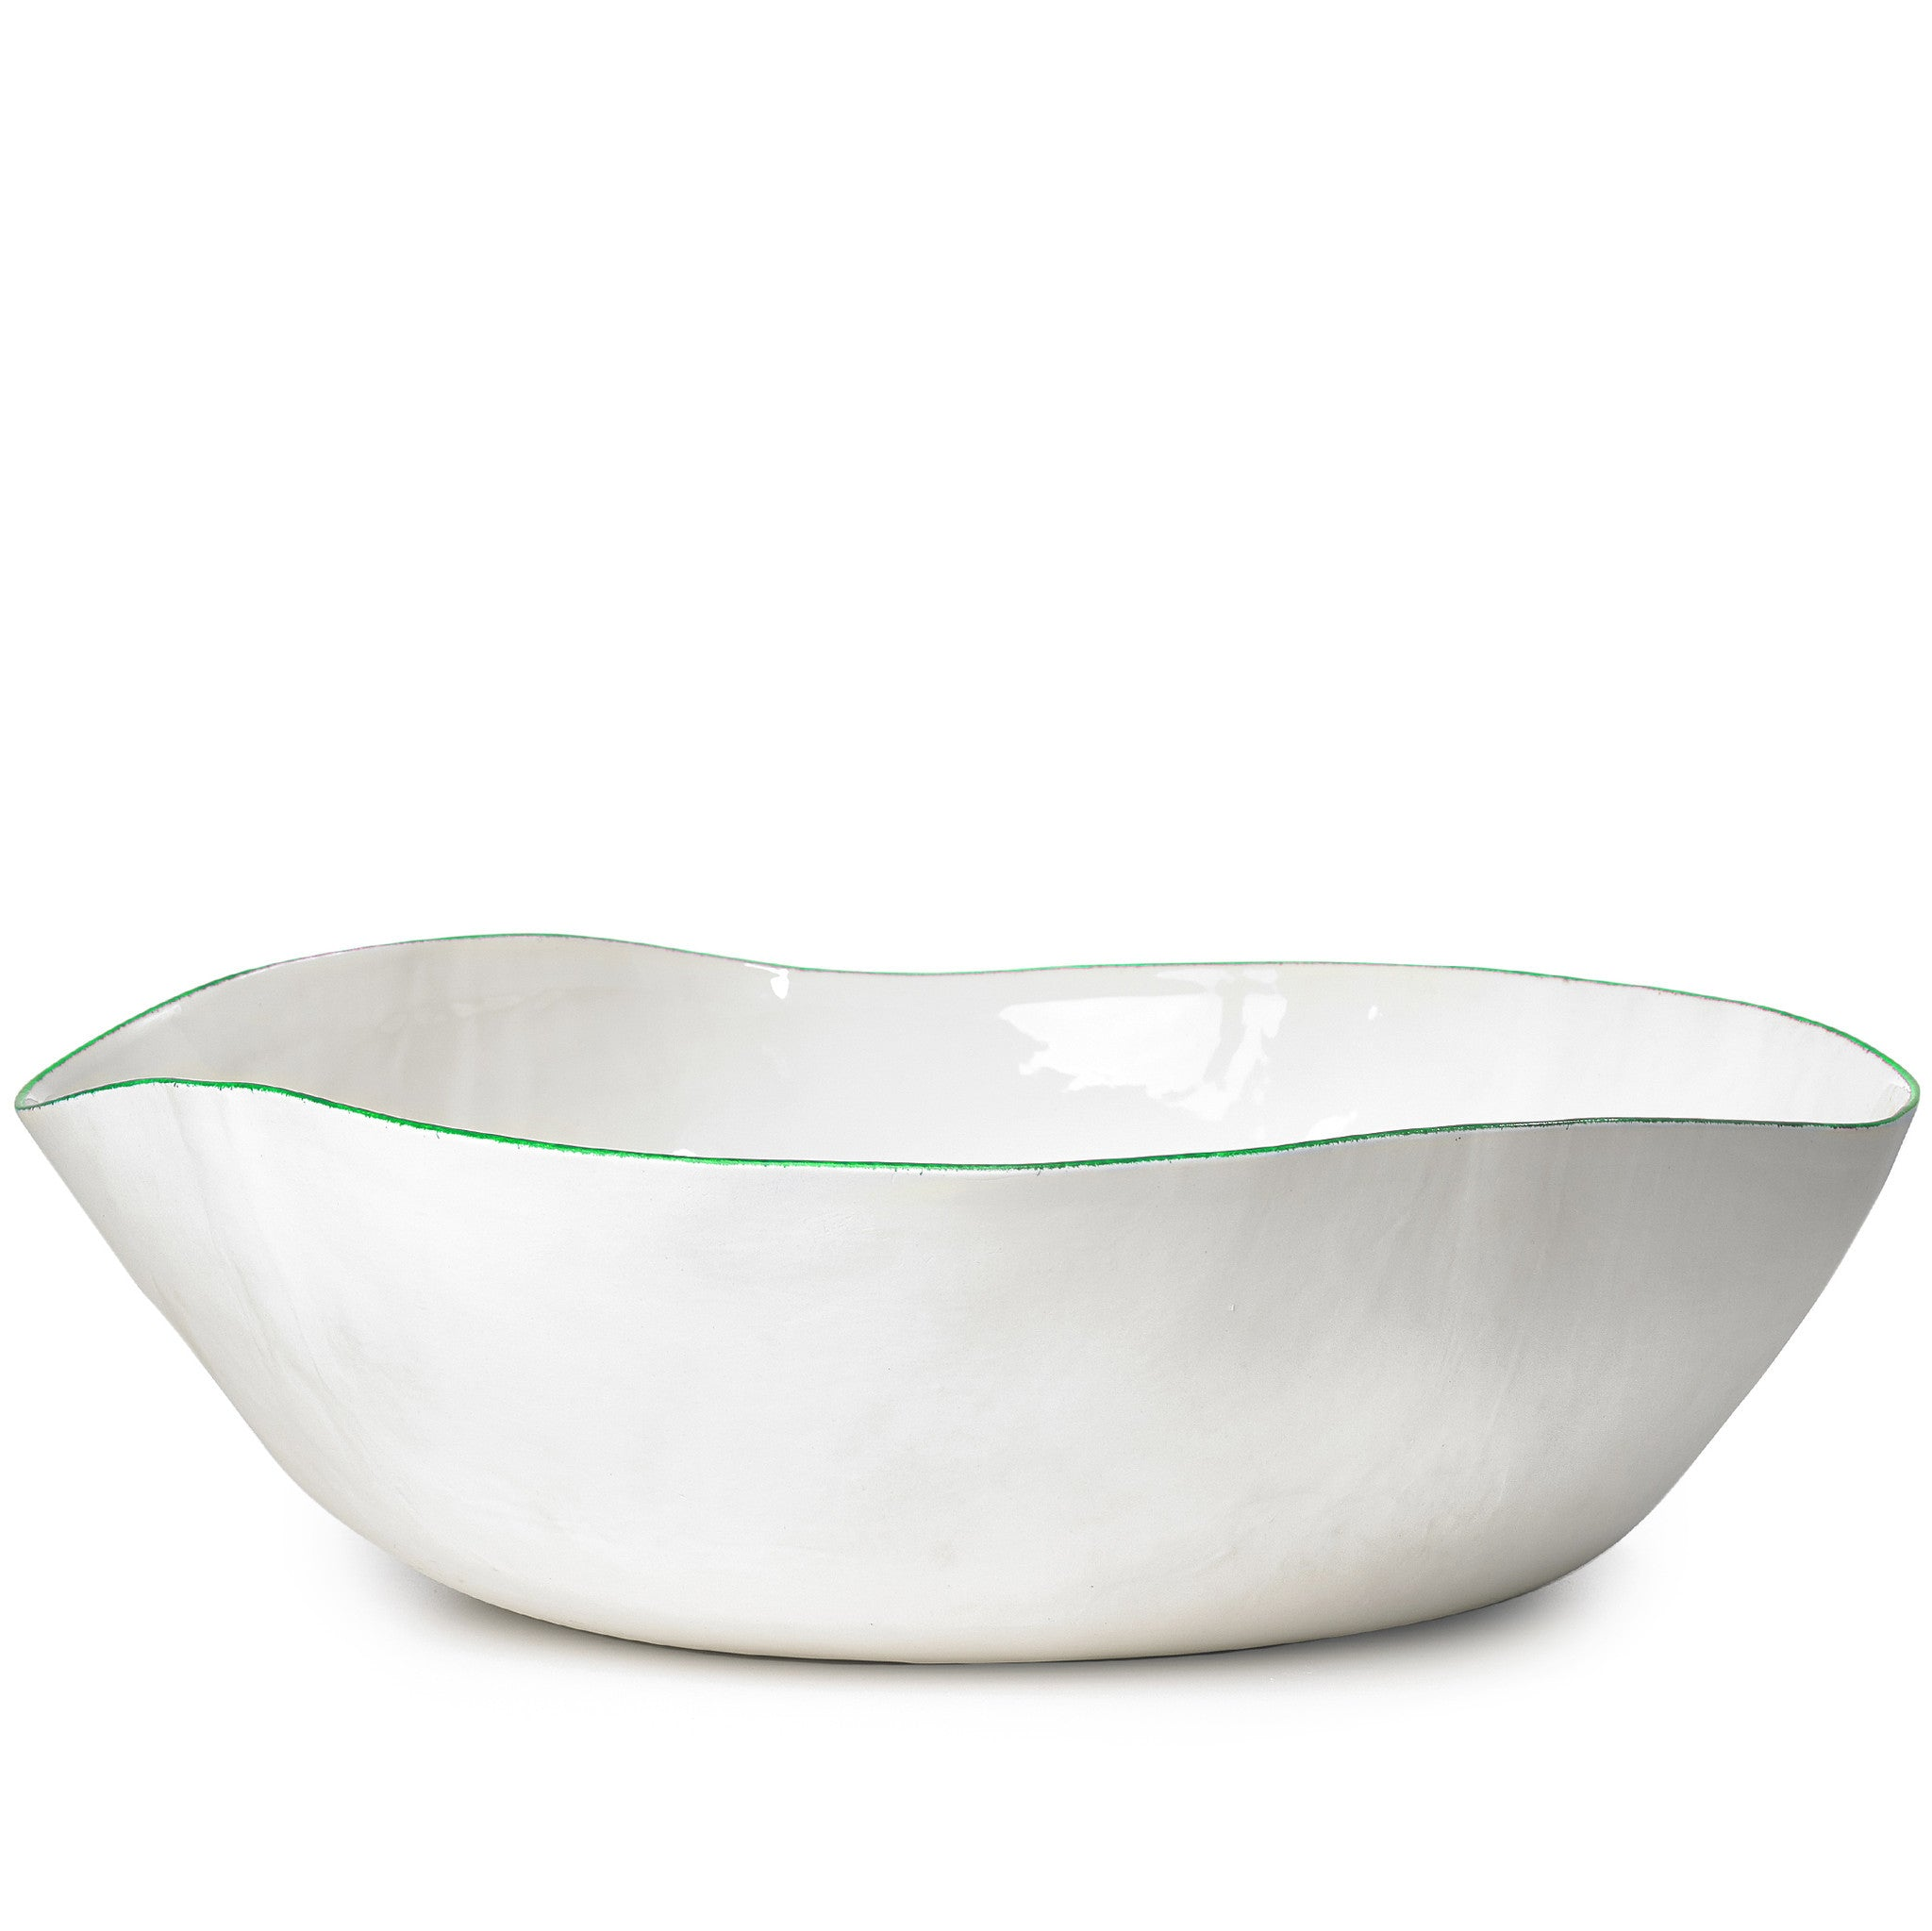 S&B Handmade 43cm Porcelain Extra Large Salad Bowl with Green Rim